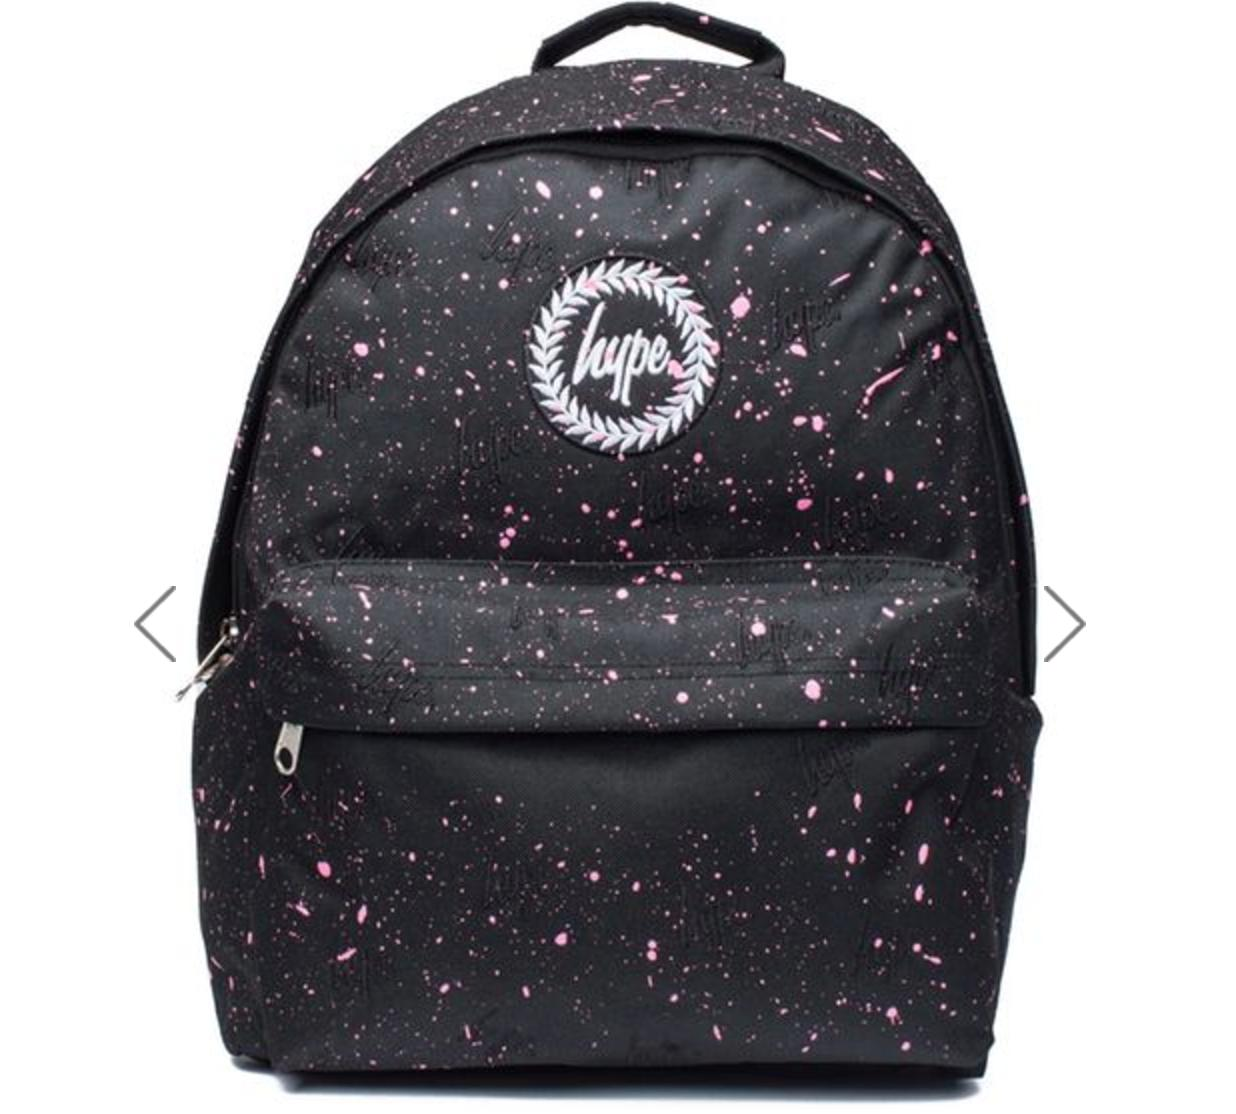 Hype backpack